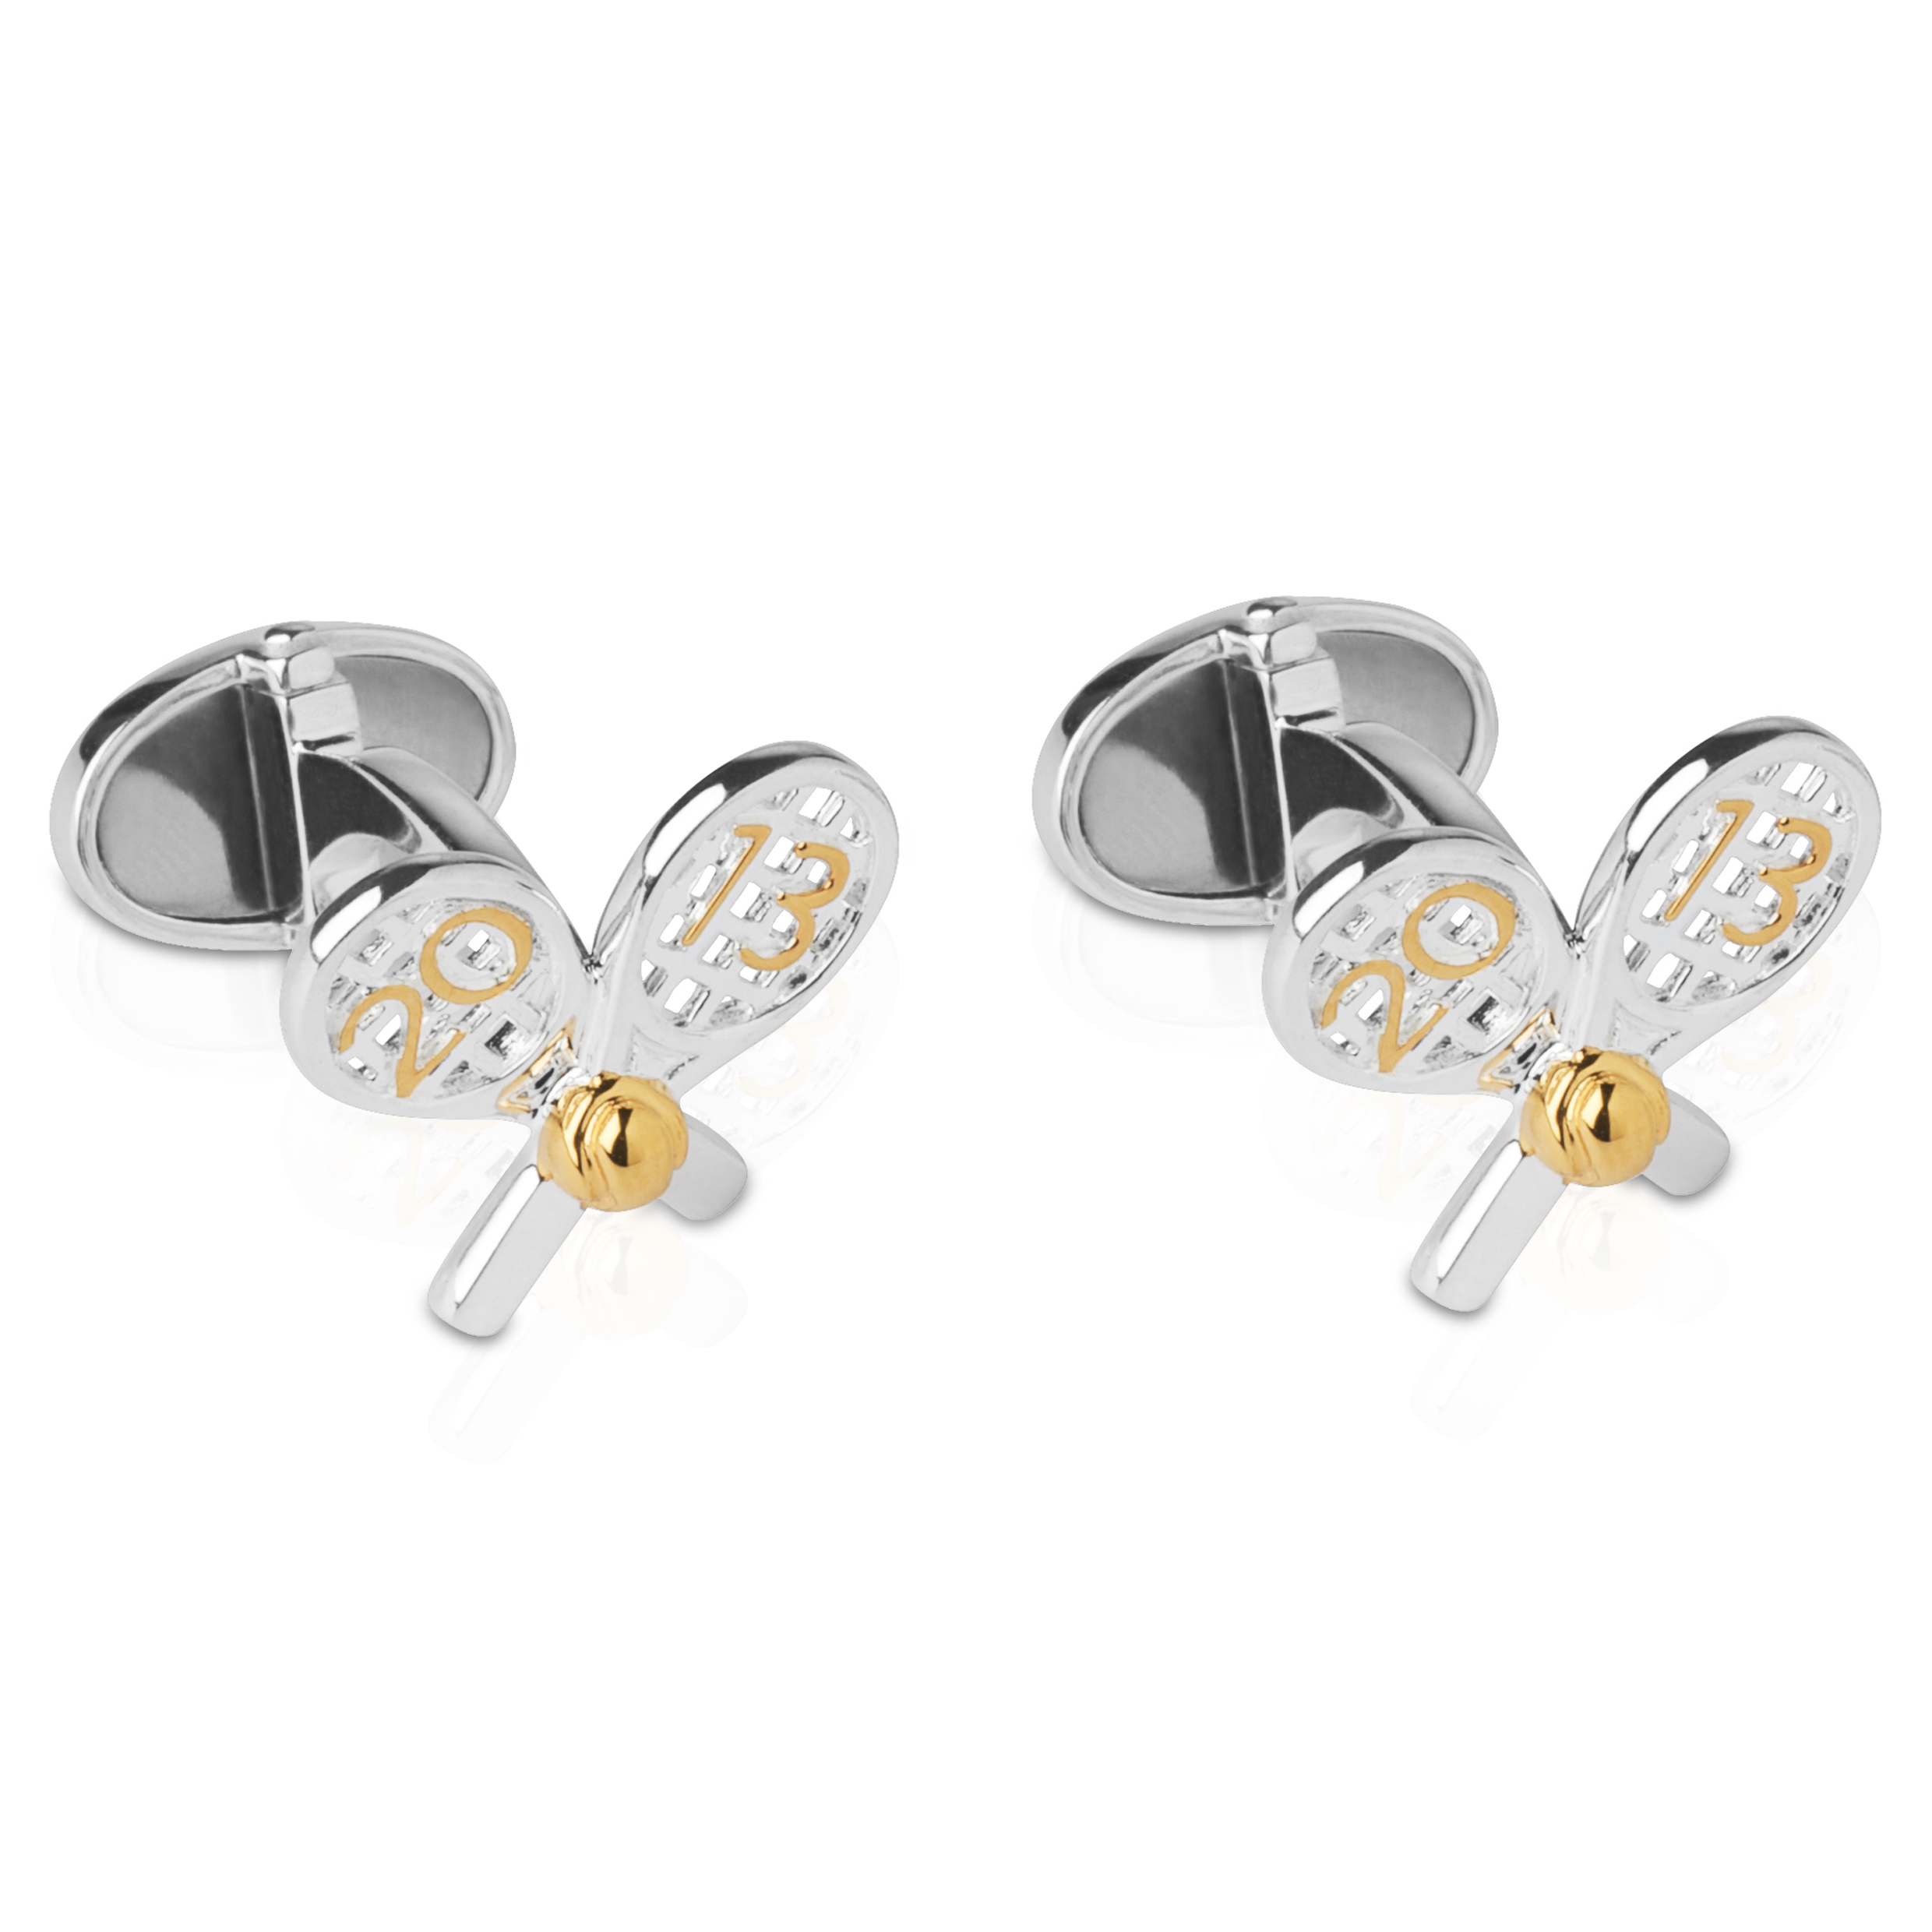 Wimbledon Limited Edition 2013 Cufflinks